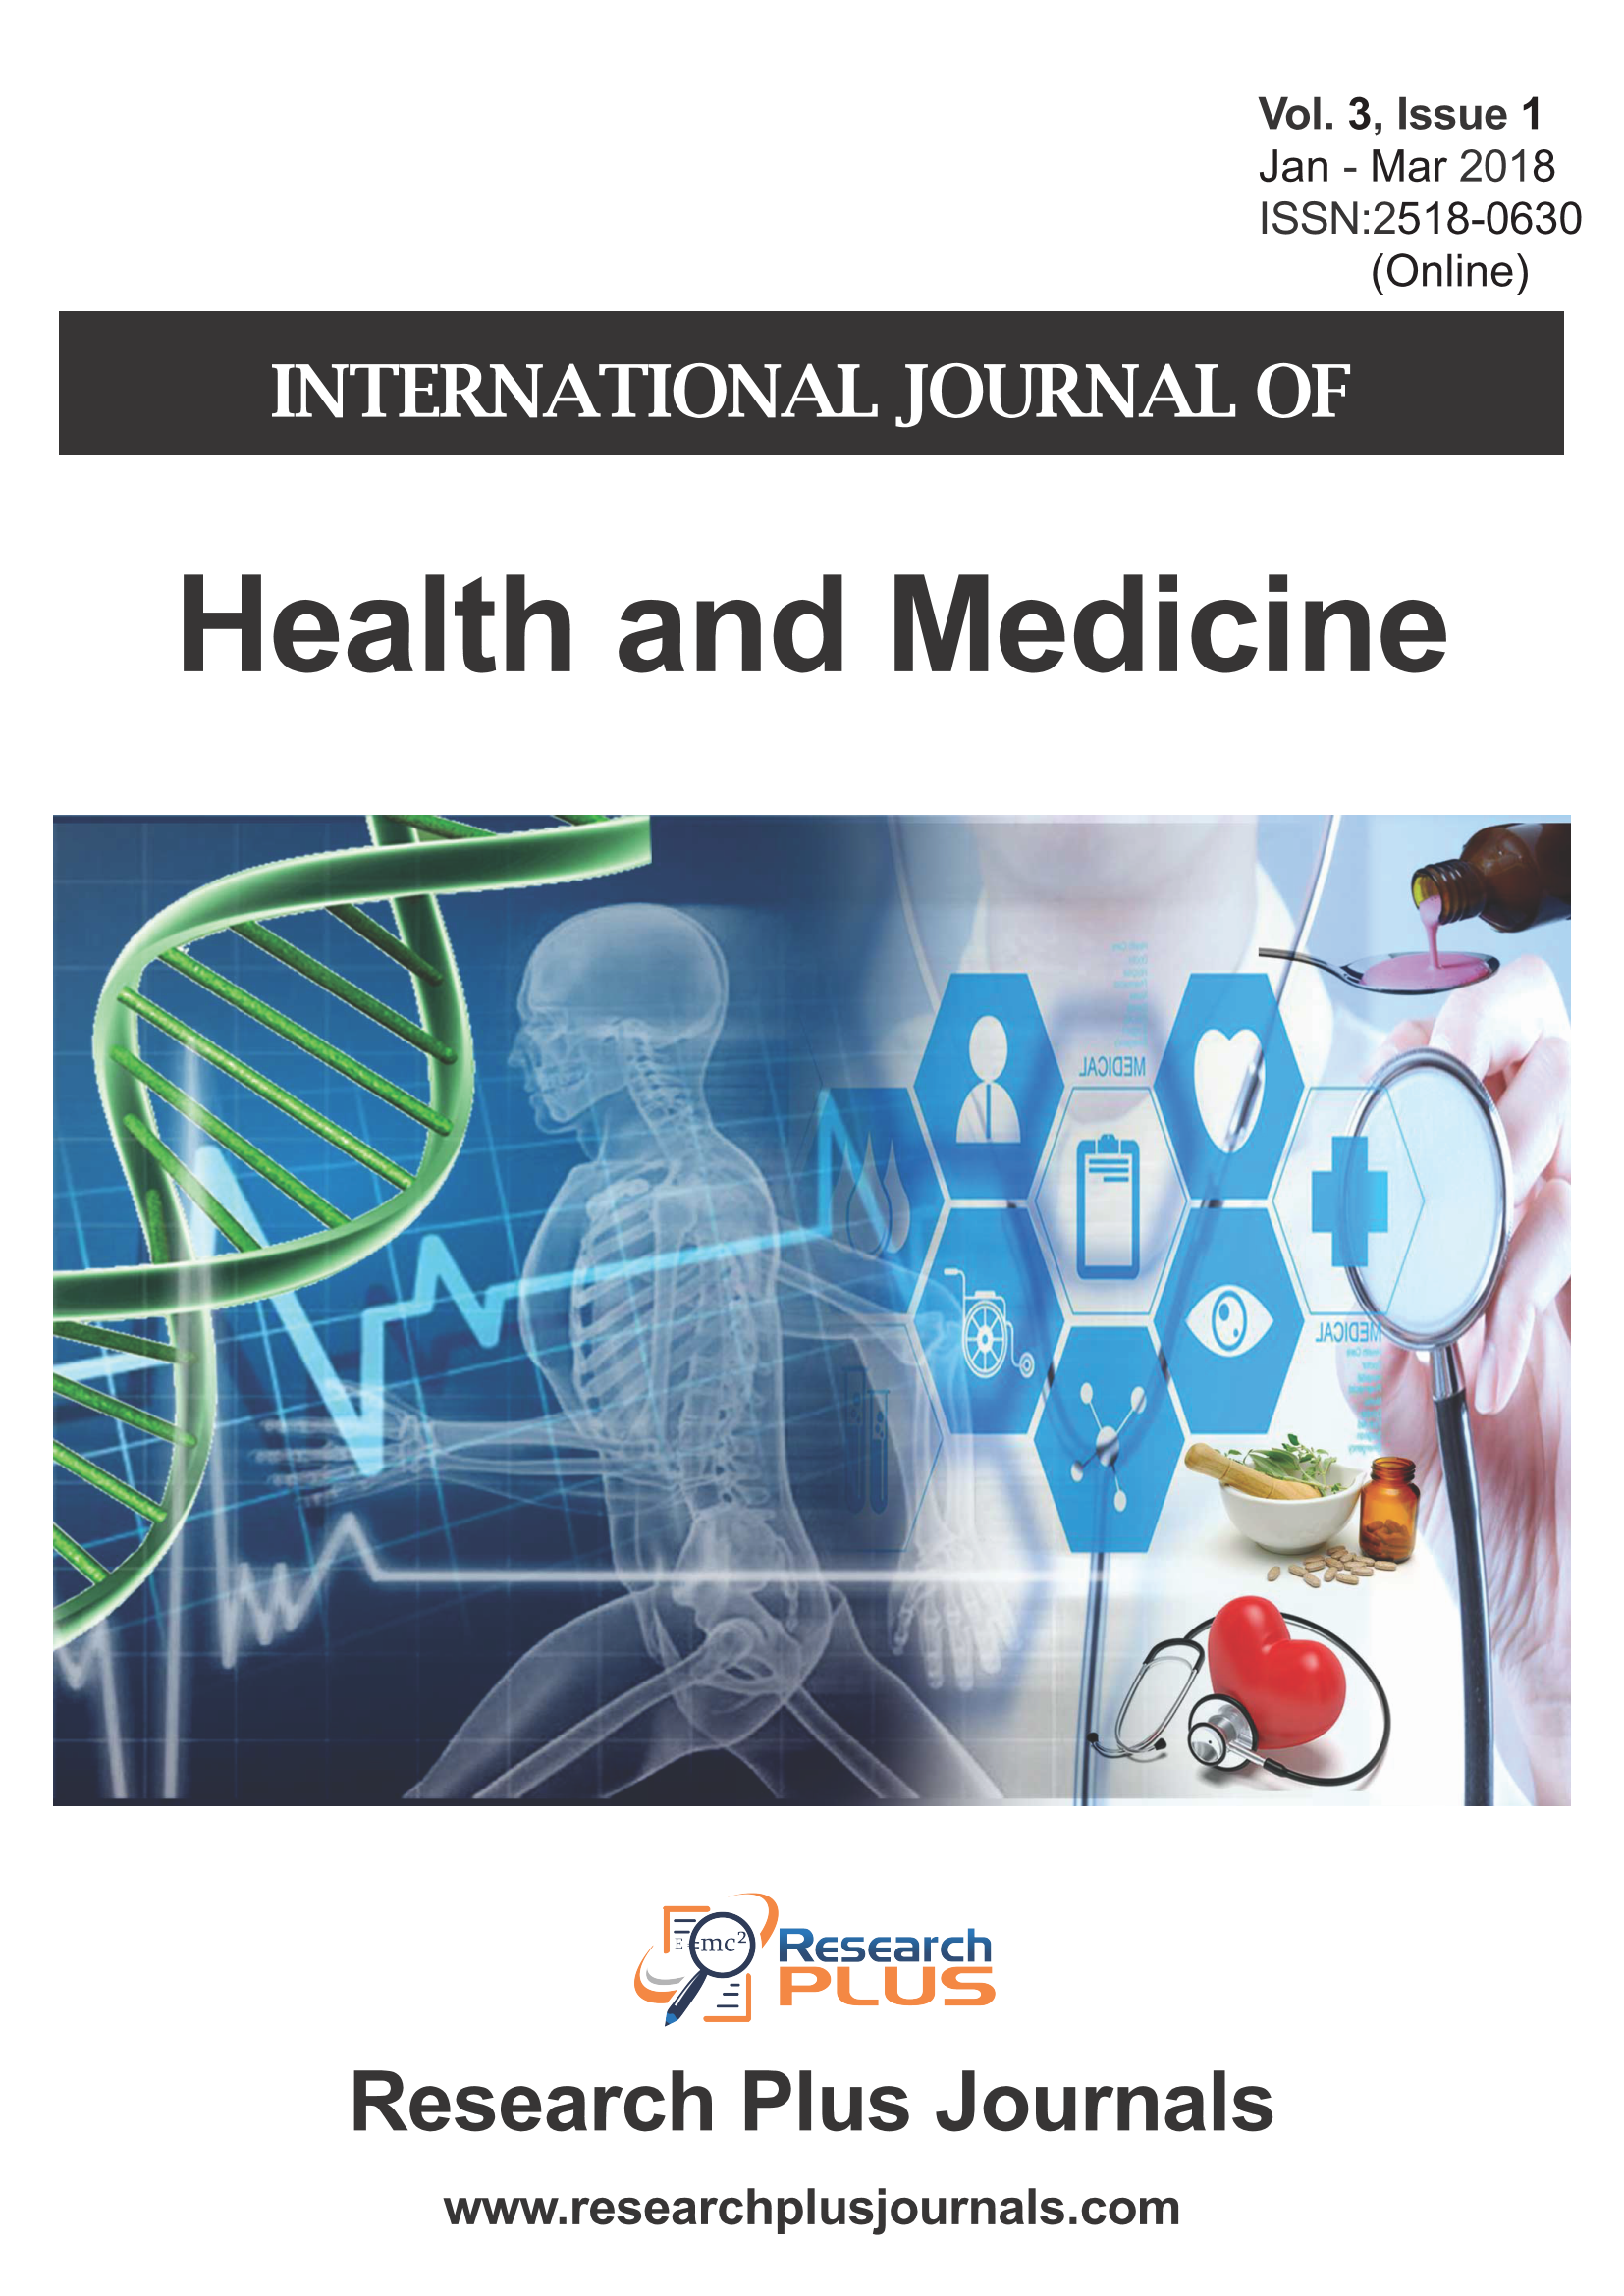 Volume 3, Issue 1, International Journal of Health and Medicine (IJHM) (Online ISSN: 2518-0630)